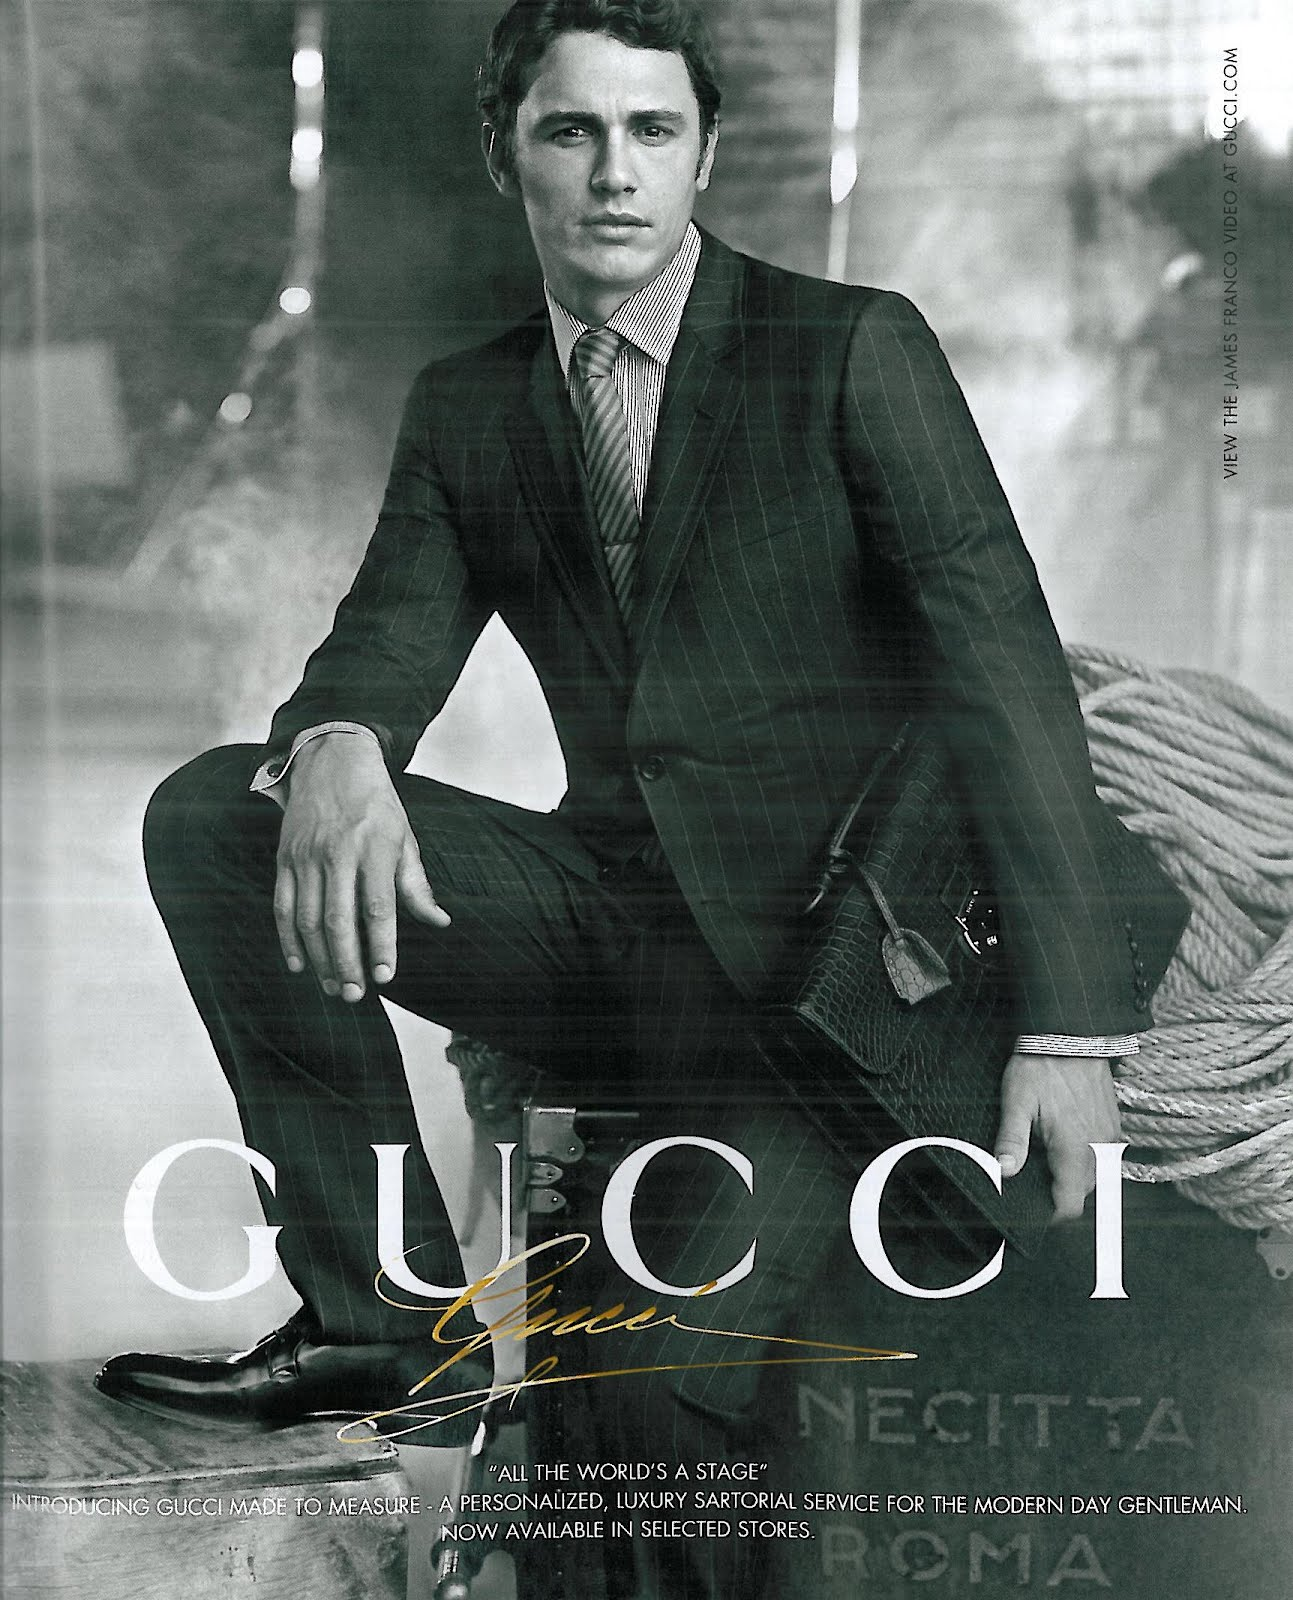 MOLIMU: Trailer: Gucci Documentary 'The Director' by James ...